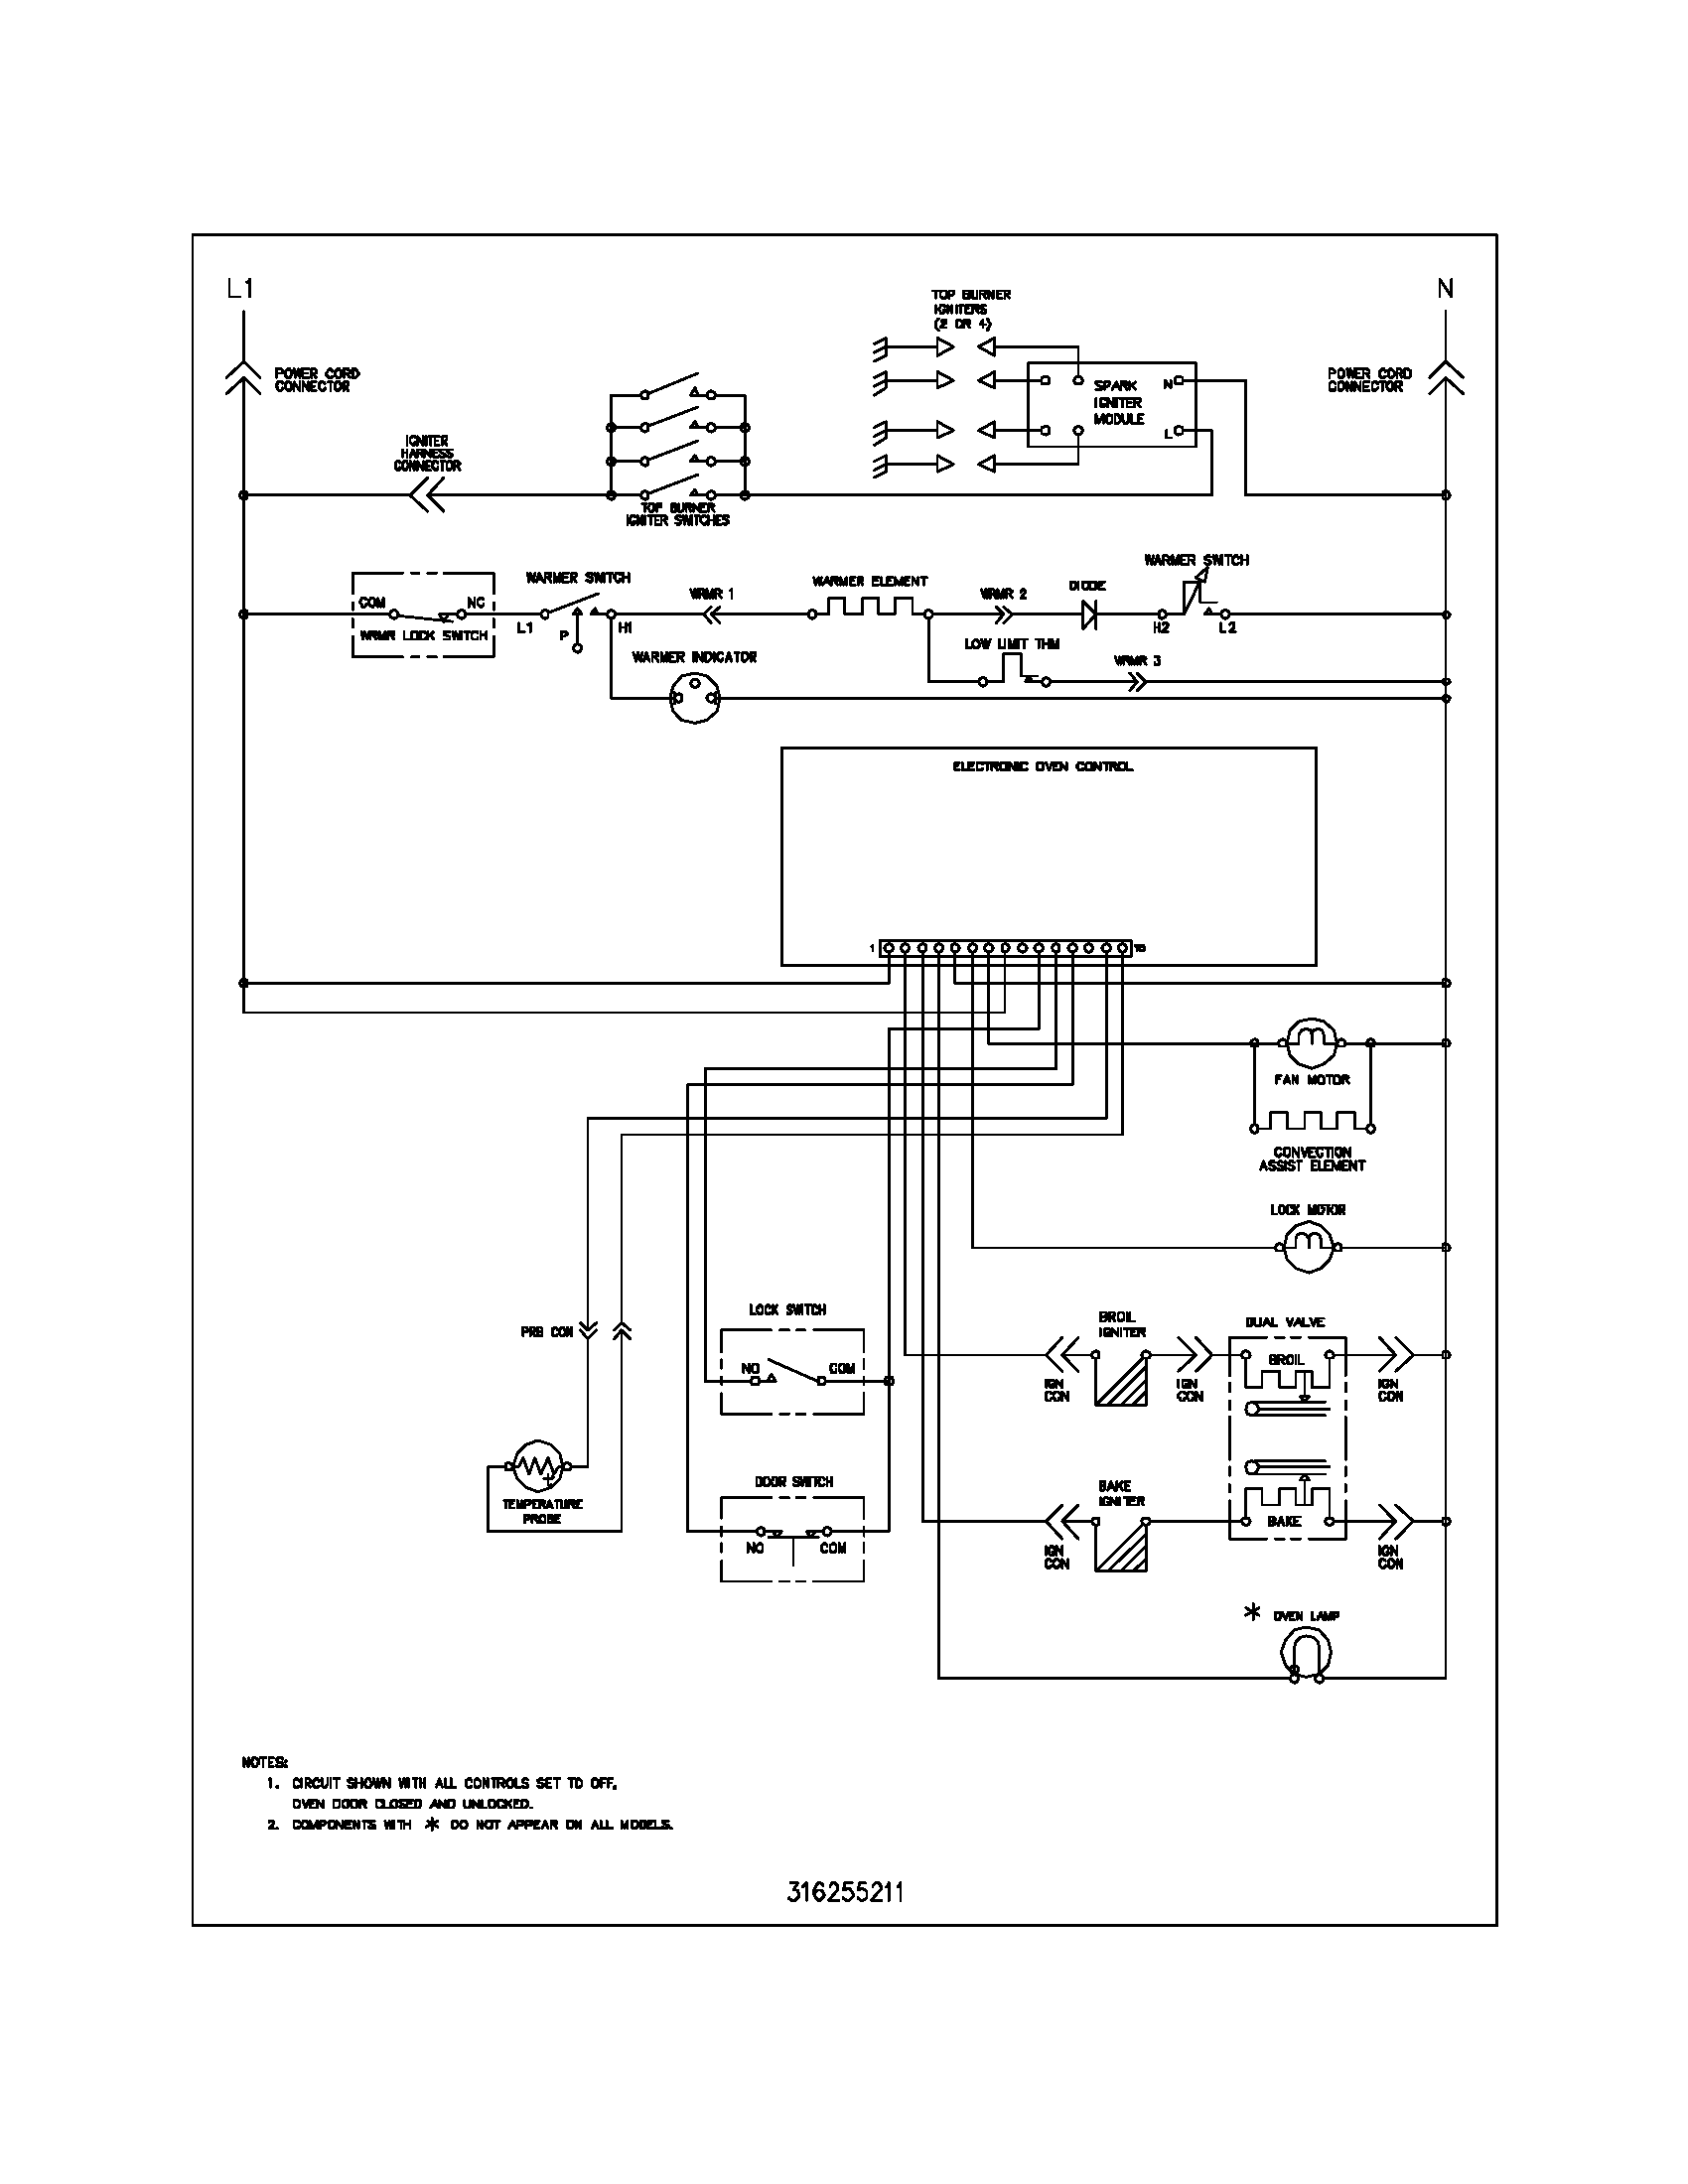 frigidaire plgf389ccc gas range timer stove clocks and appliance MSD Ignition Wiring Diagram plgf389ccc gas range wiring schematic parts diagram